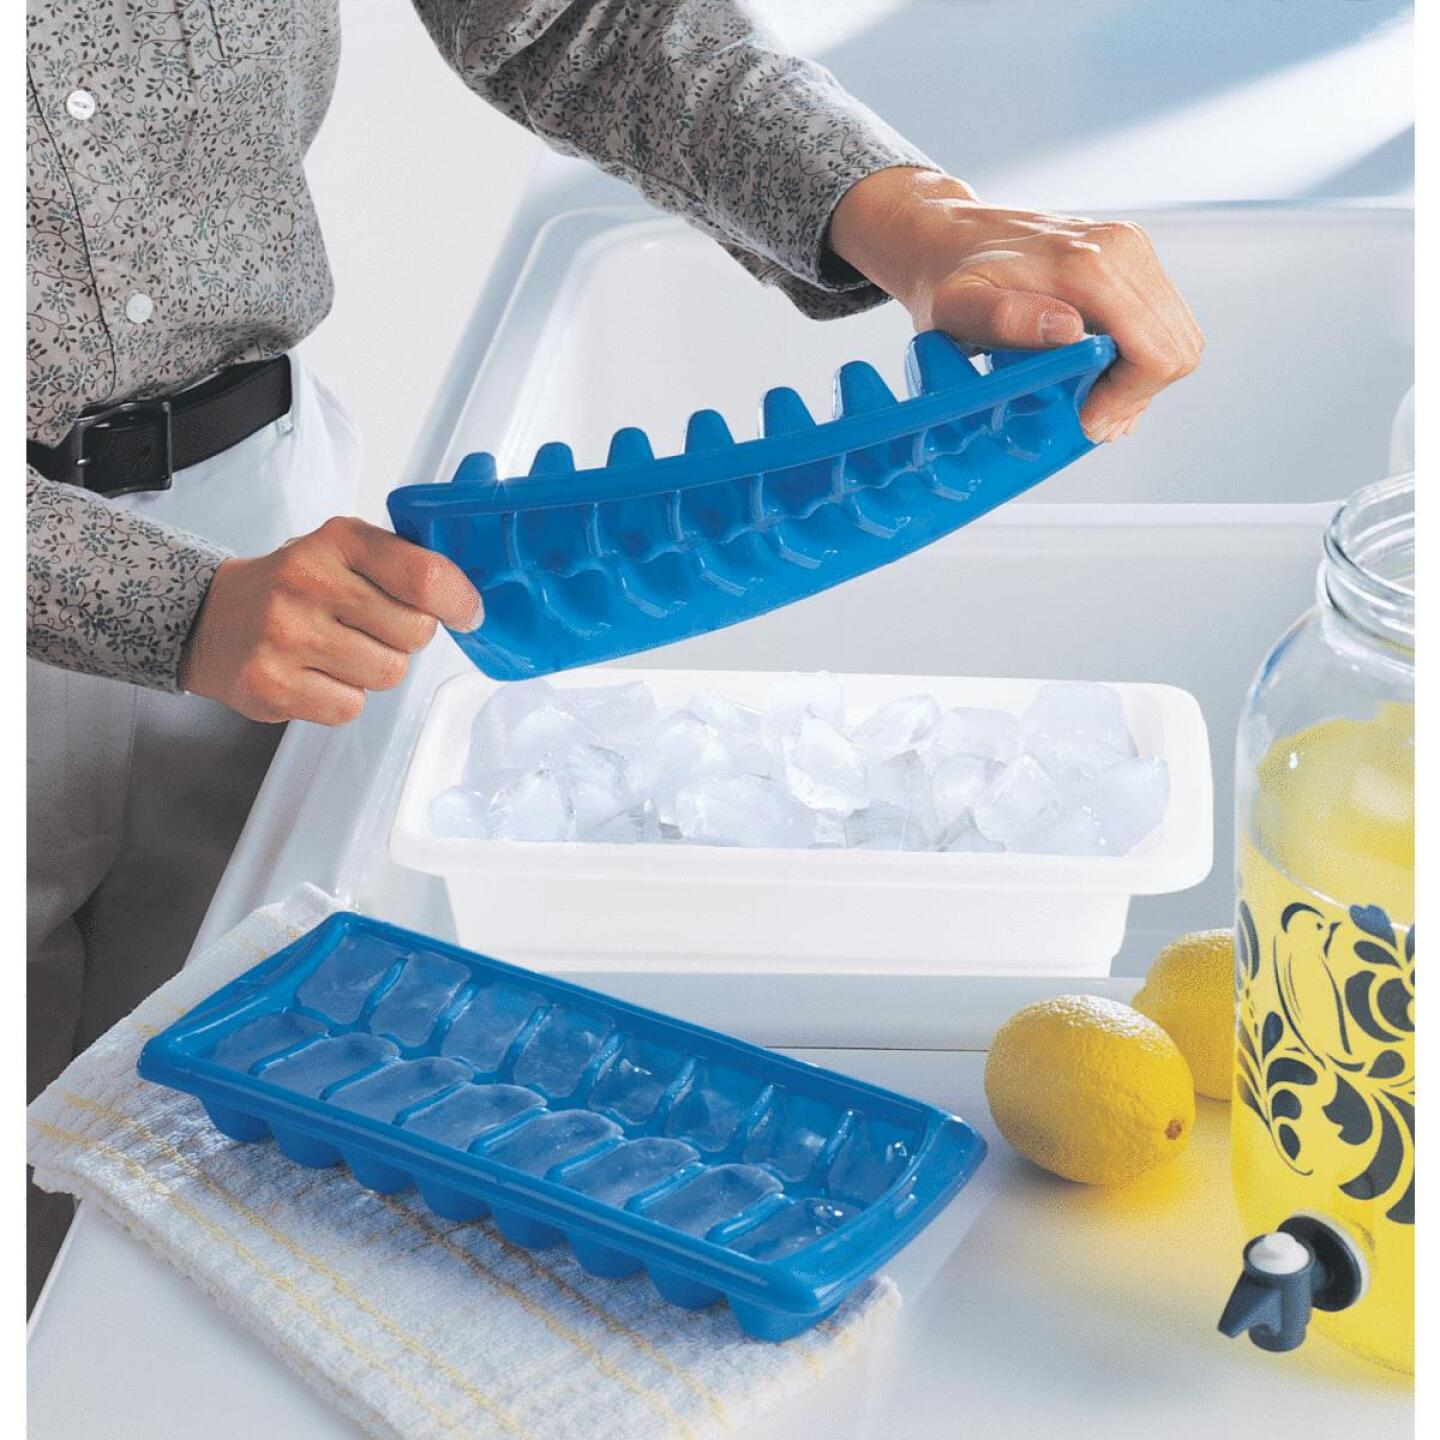 Rubbermaid Periwinkle Ice Cube Tray (2 Count) Image 3